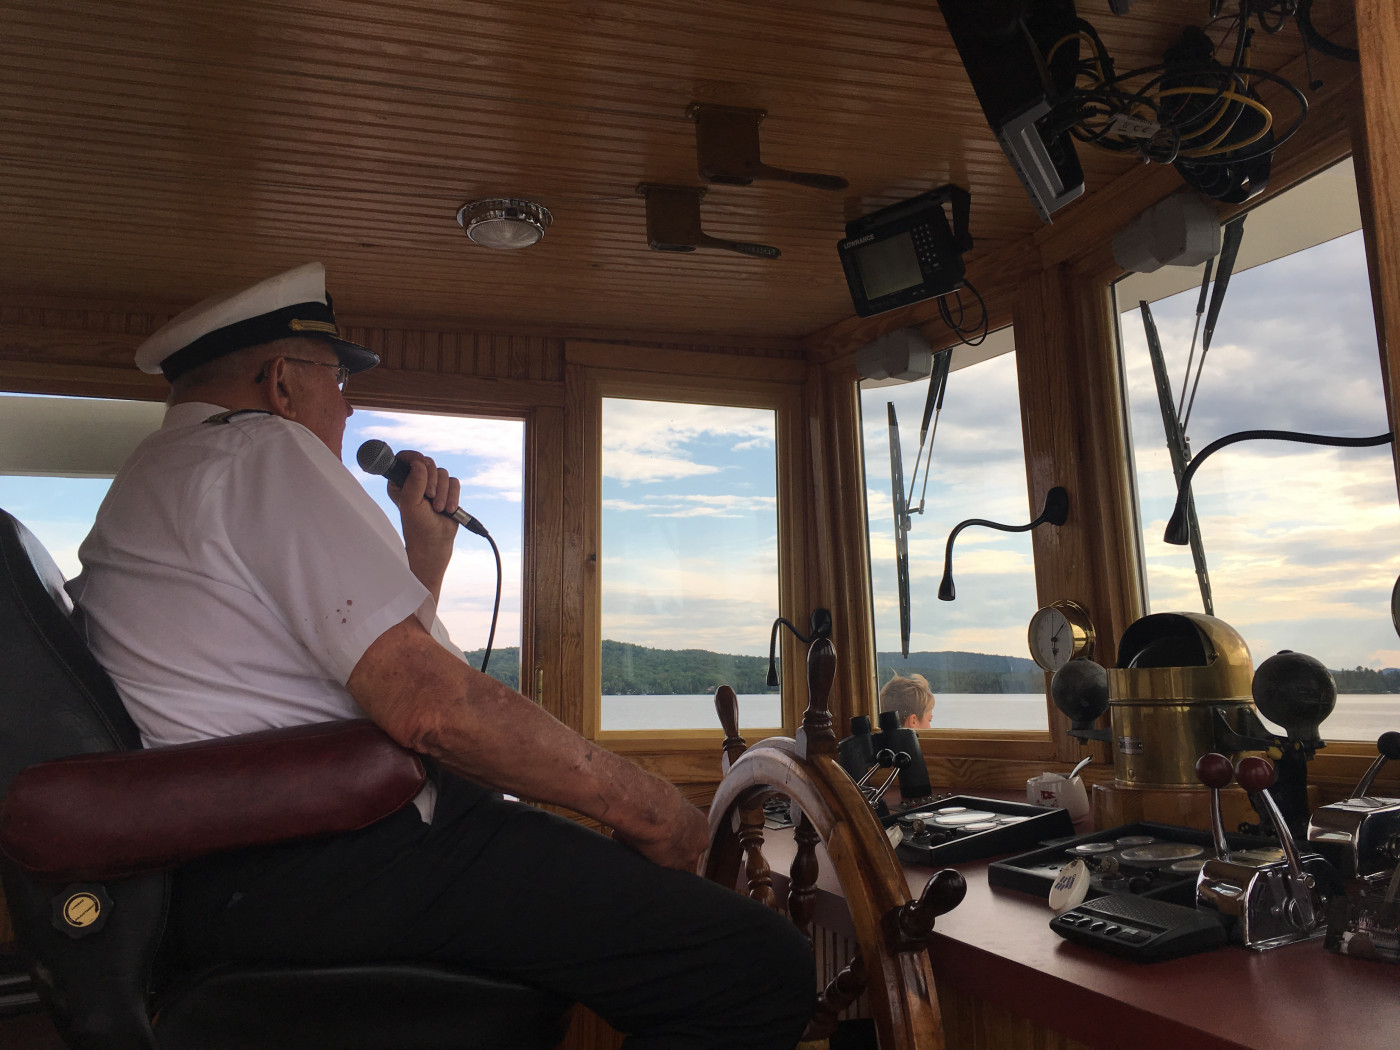 Captain Dean narrating while at the wheel.